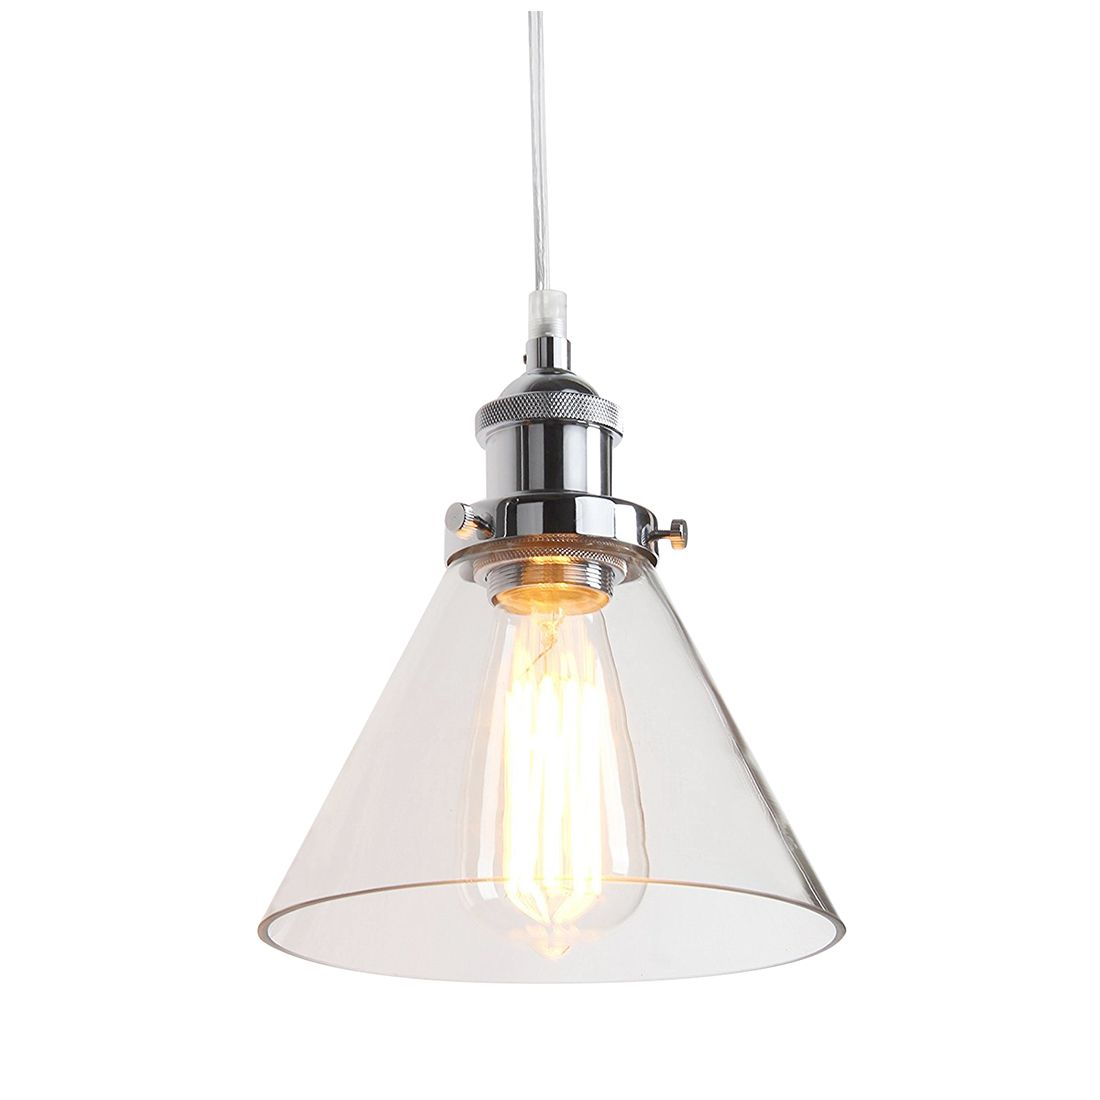 Industrial Vintage Stainless steel head Edison 1 Light Iron Body Glass Shade Loft Coffee Bar Kitchen Hanging Pendant Lamp vintage iron stainless steel pendant lamp modern silver stainless steel pendant light free shipping